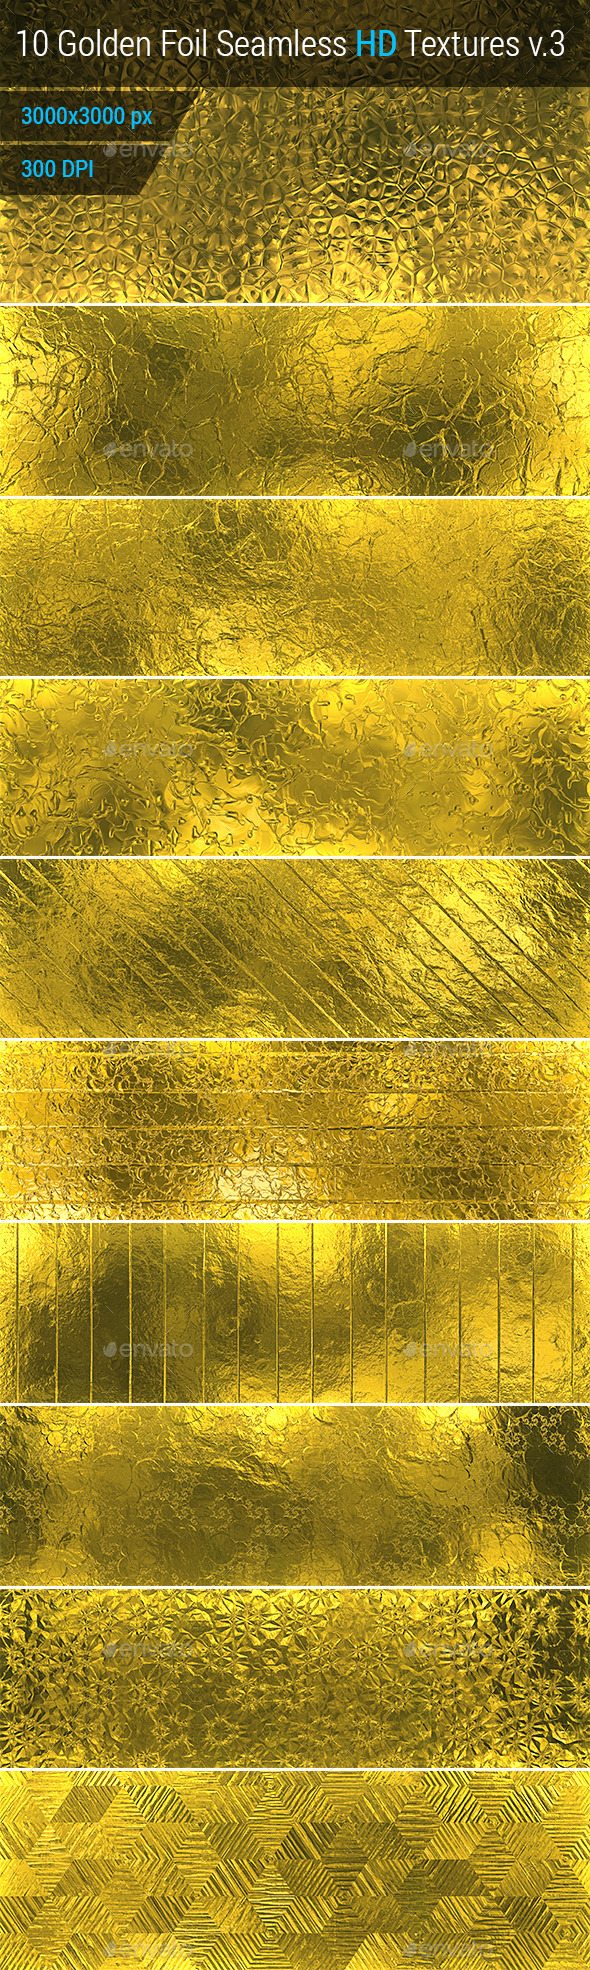 Golden Foil Seamless HD Textures Set v.3